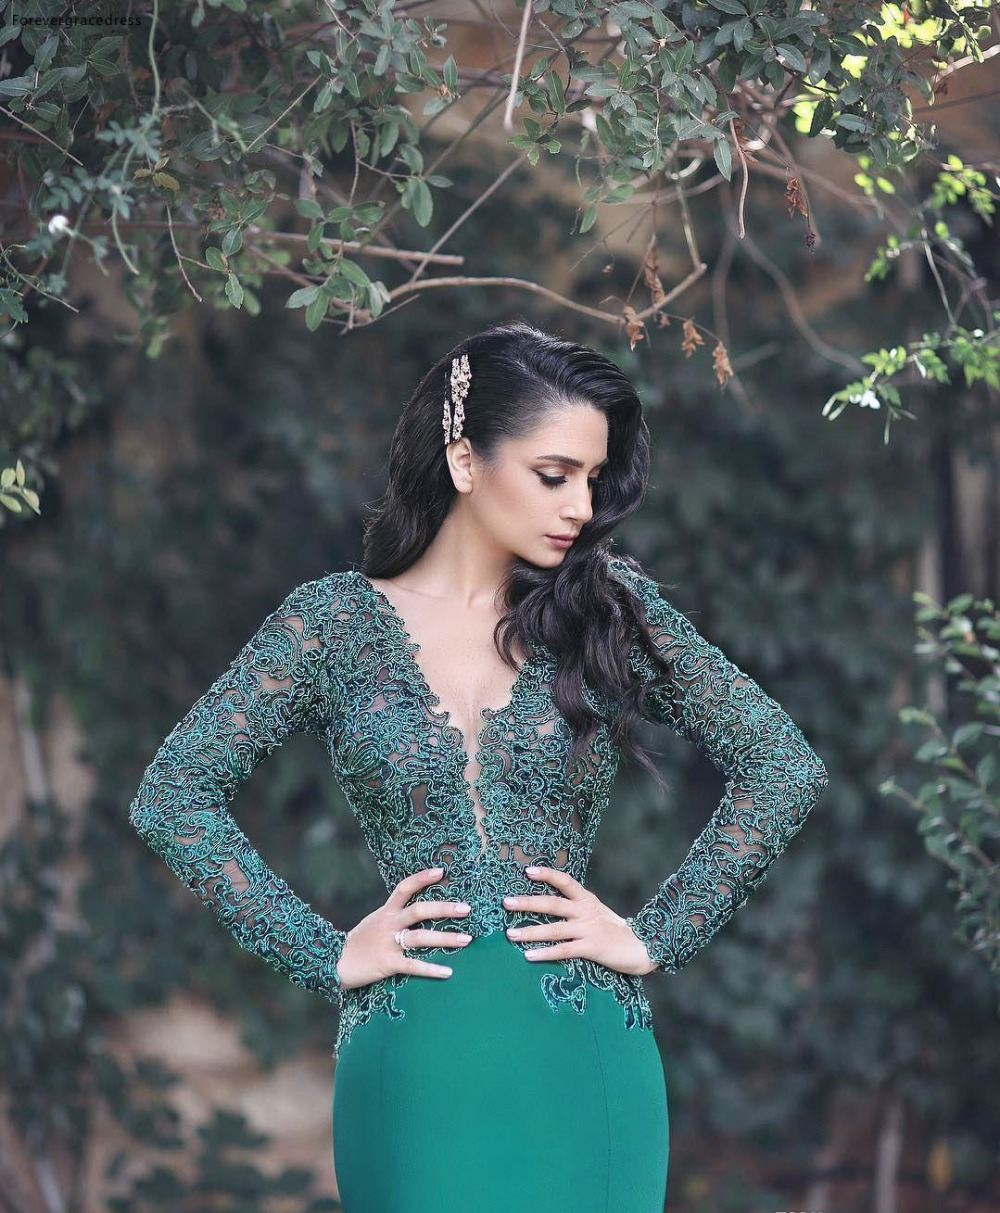 2018 Sexy Sheer Neck Dark Green Mermaid Evening Dresses Illusion Lace Appliques Long Sleeves Satin Floor-Length Formal Wears Evening Gowns 119 (4)